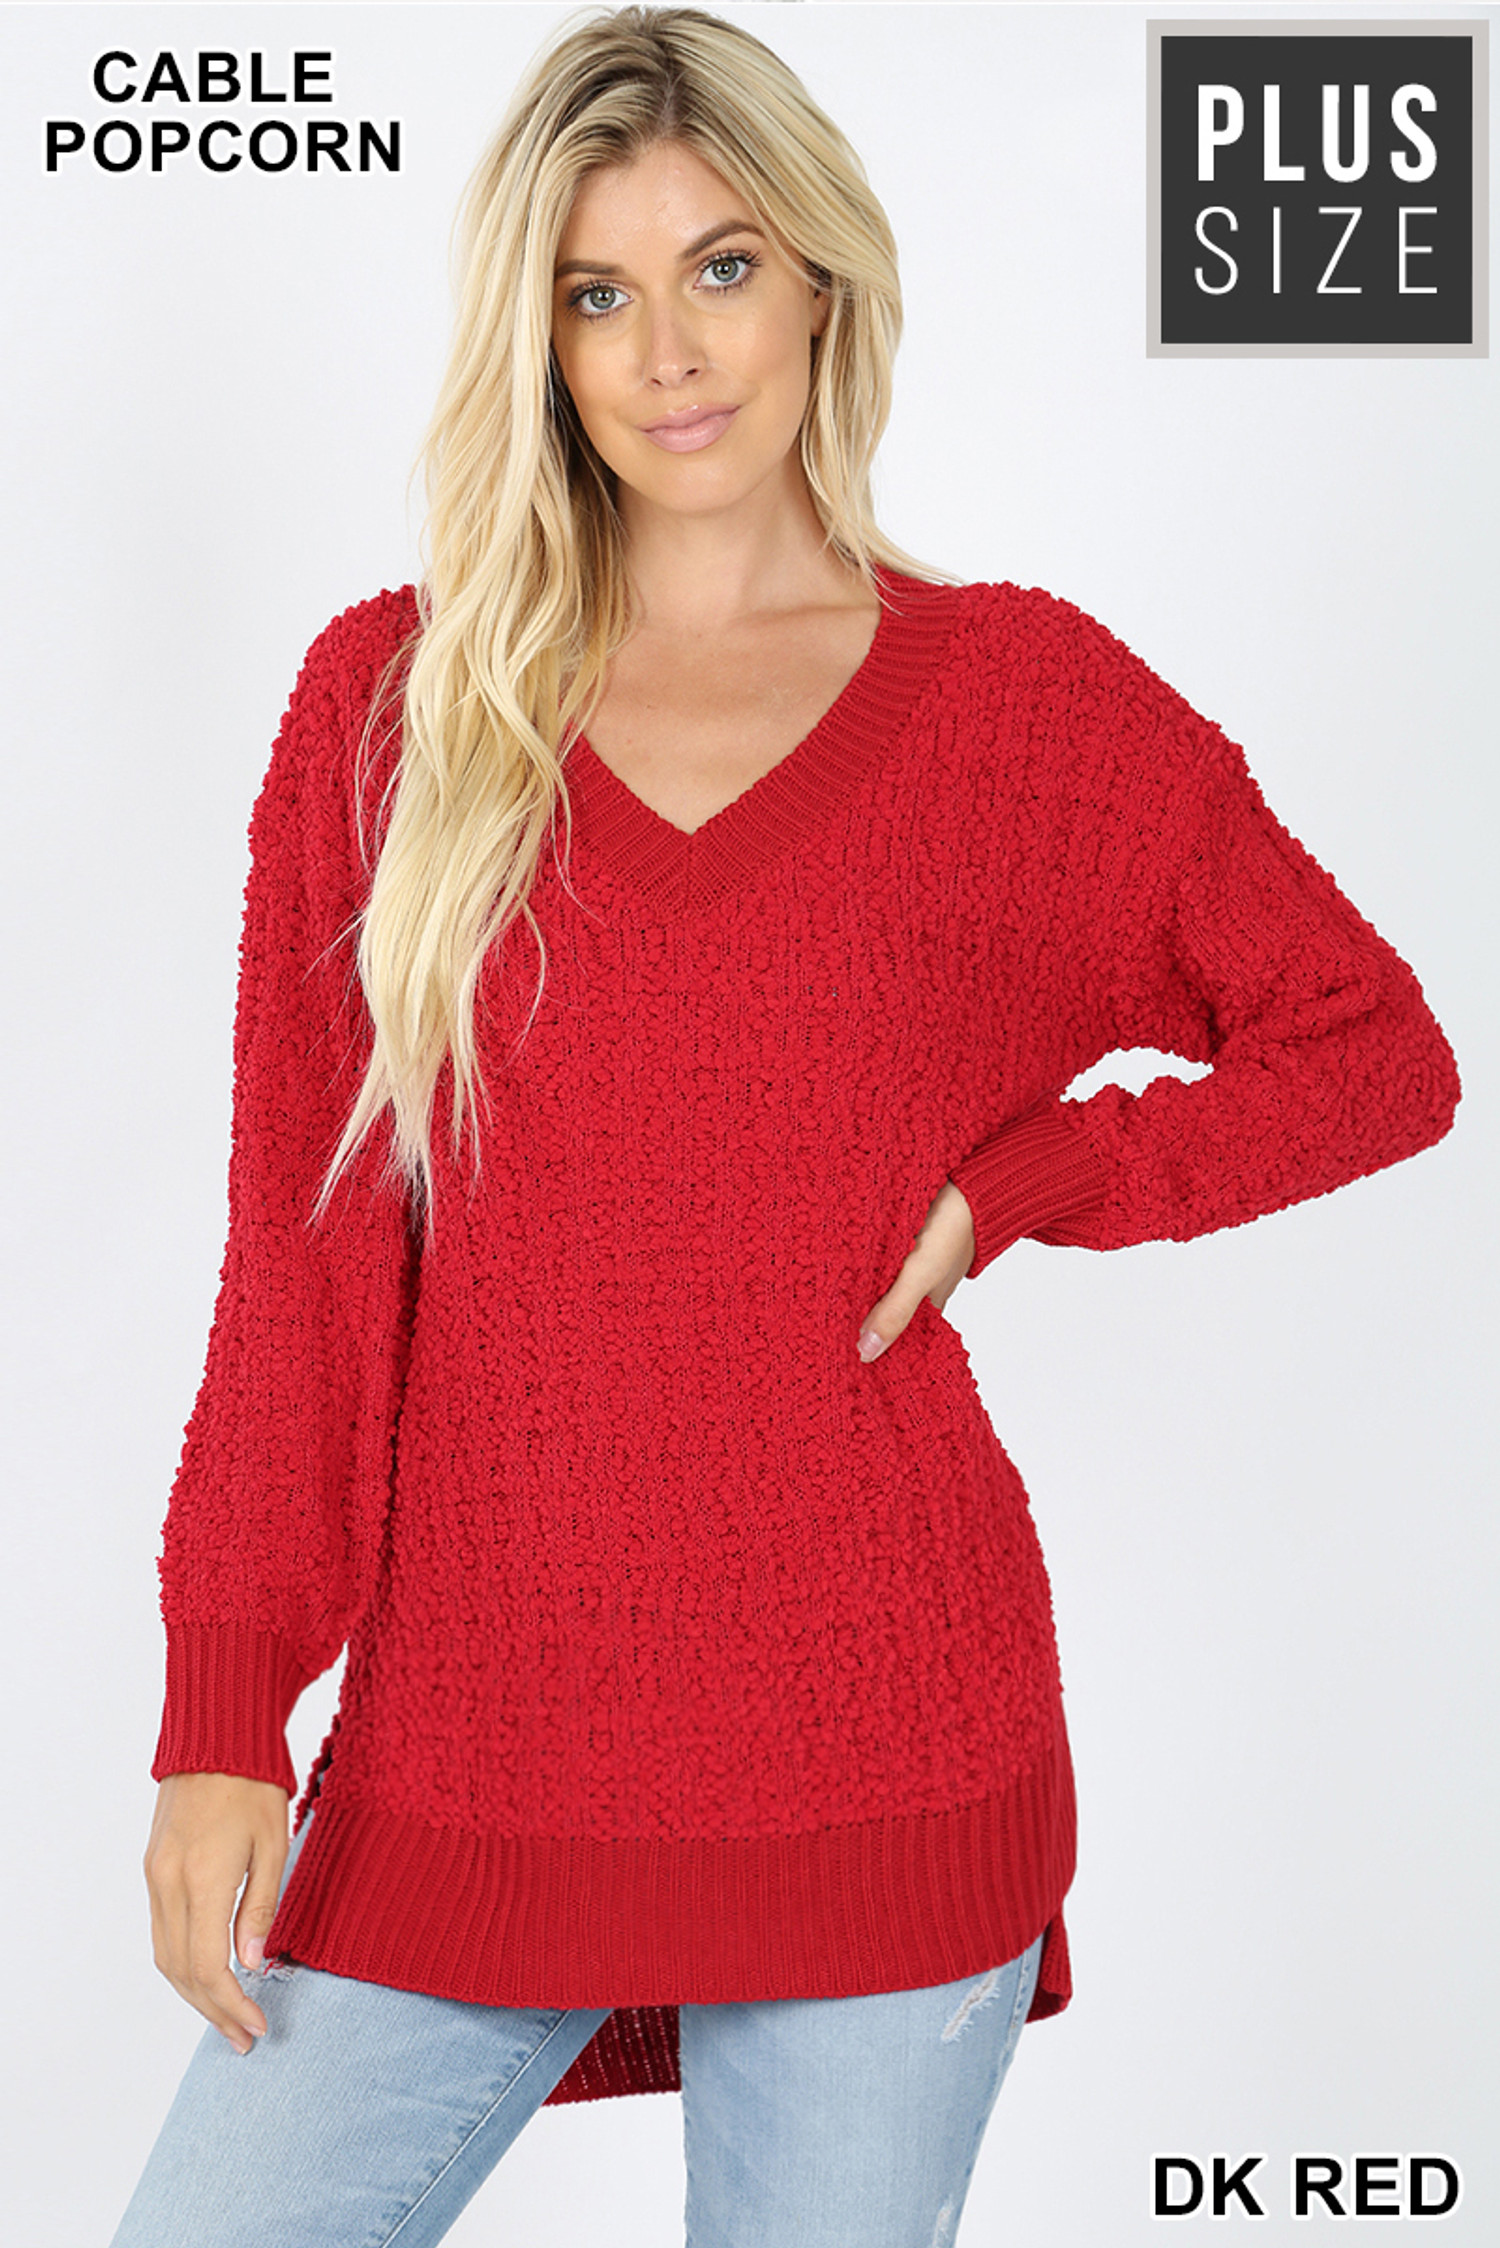 Front image of Dark Red Cable Knit Popcorn V-Neck Hi-Low Plus Size Sweater